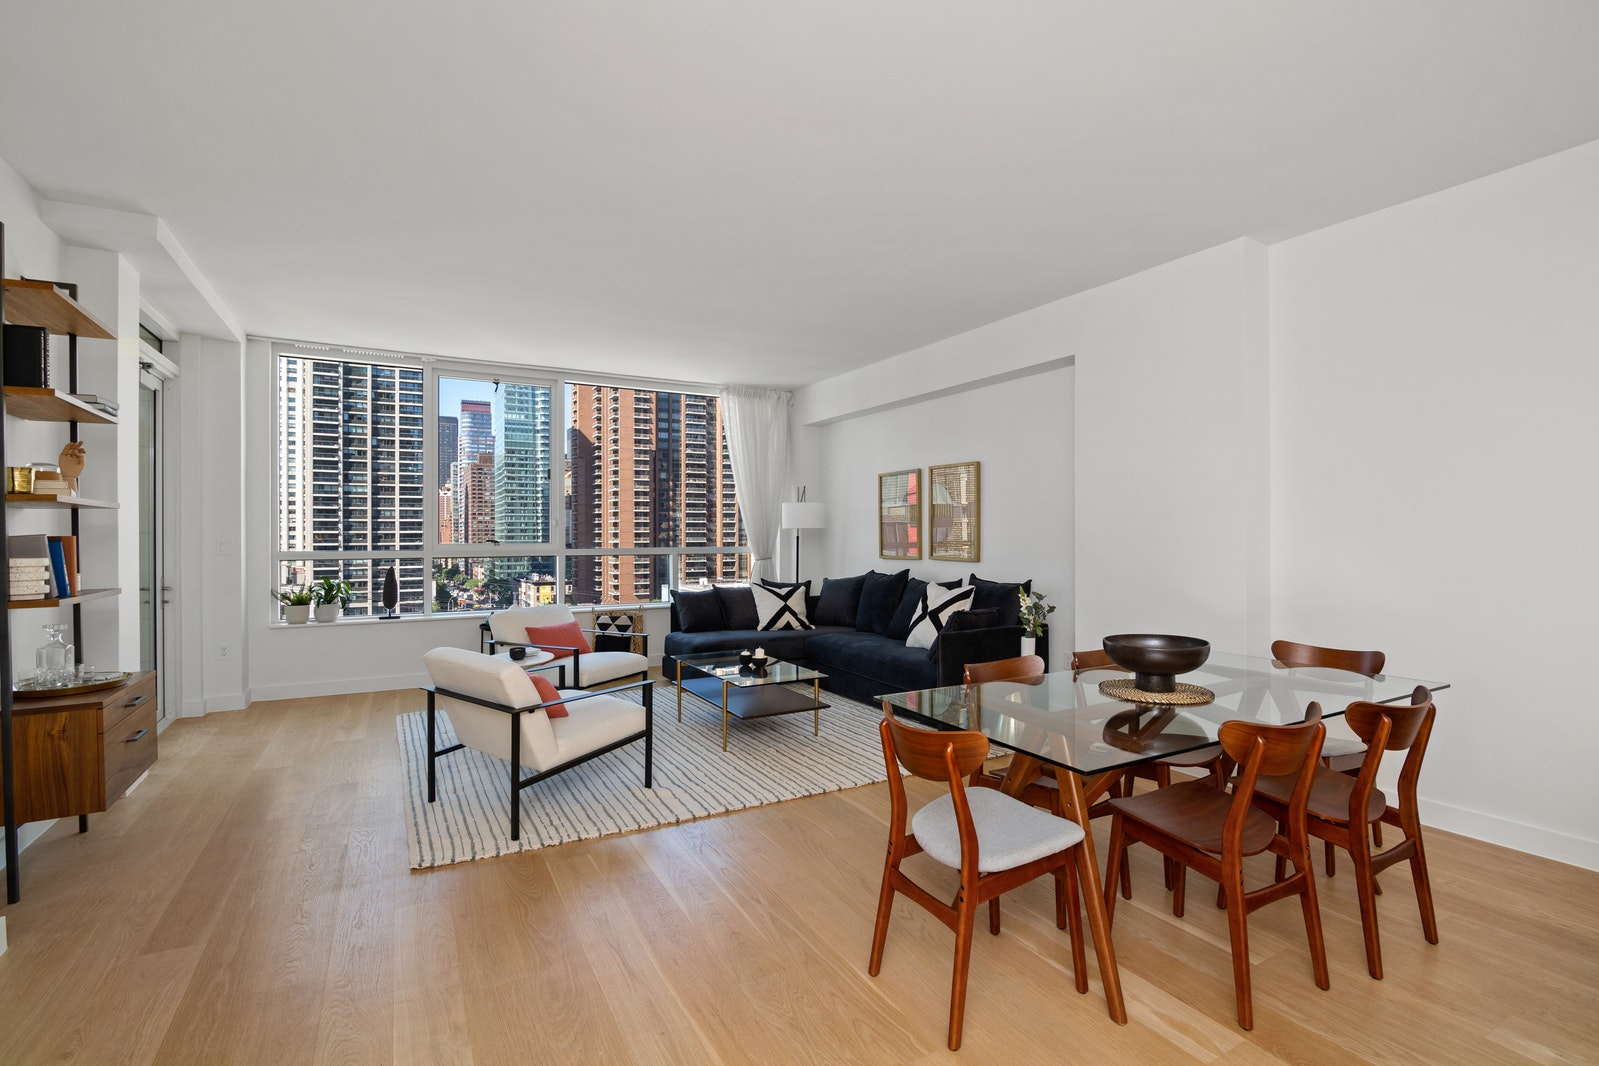 301 East 61st Street 9b, Upper East Side, NYC, 10065, $2,823,000, Property For Sale, Halstead Real Estate, Photo 2